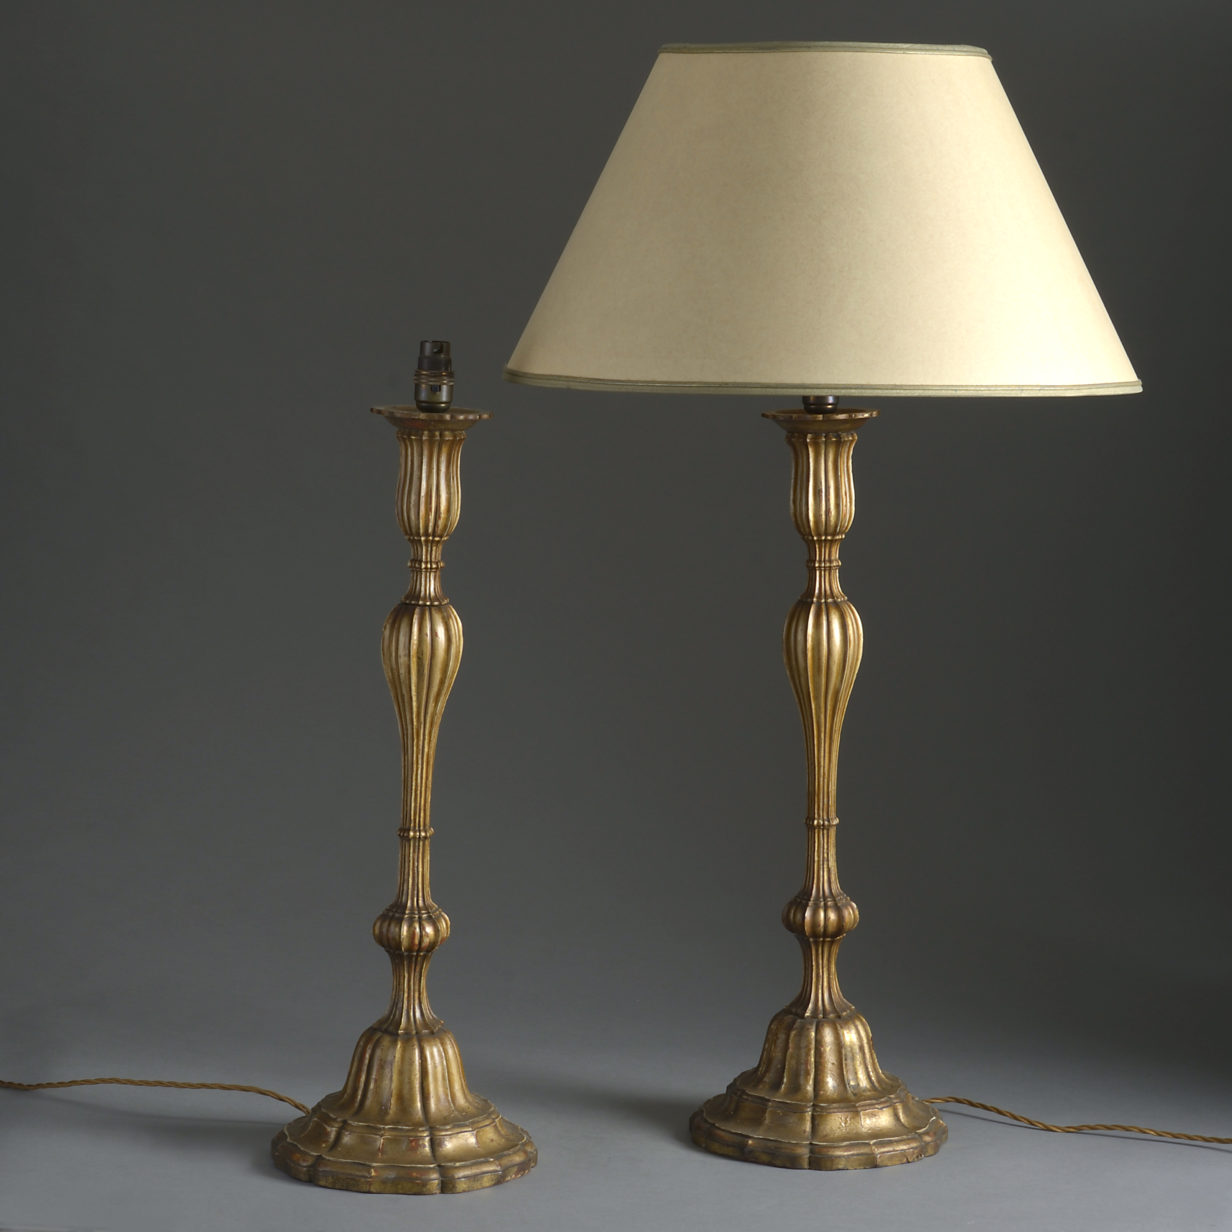 Pair of Carved Gilded Table Lamps